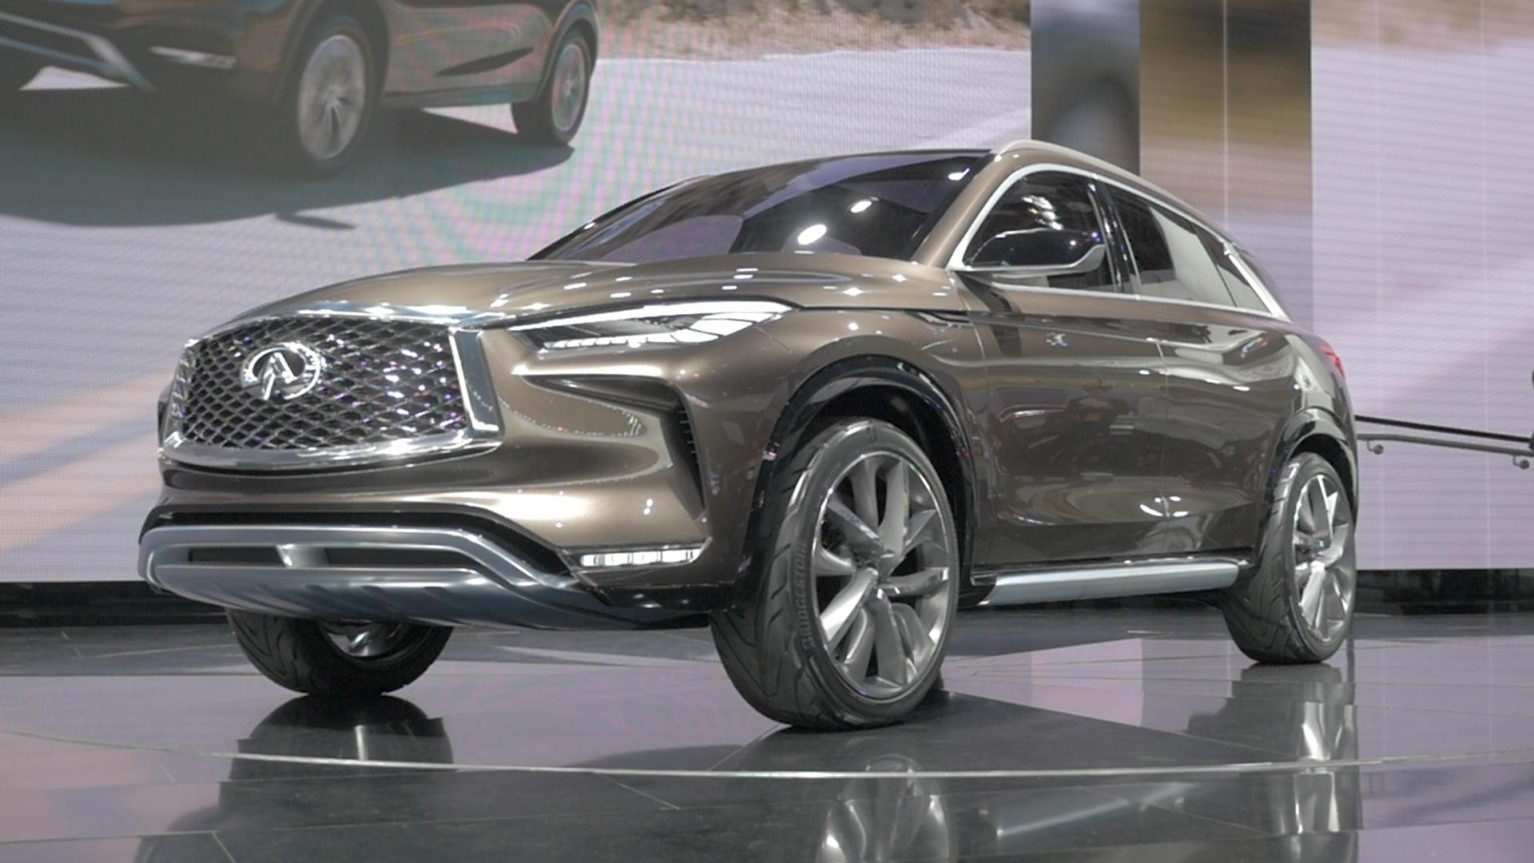 67 New 2019 Infiniti QX70 Prices